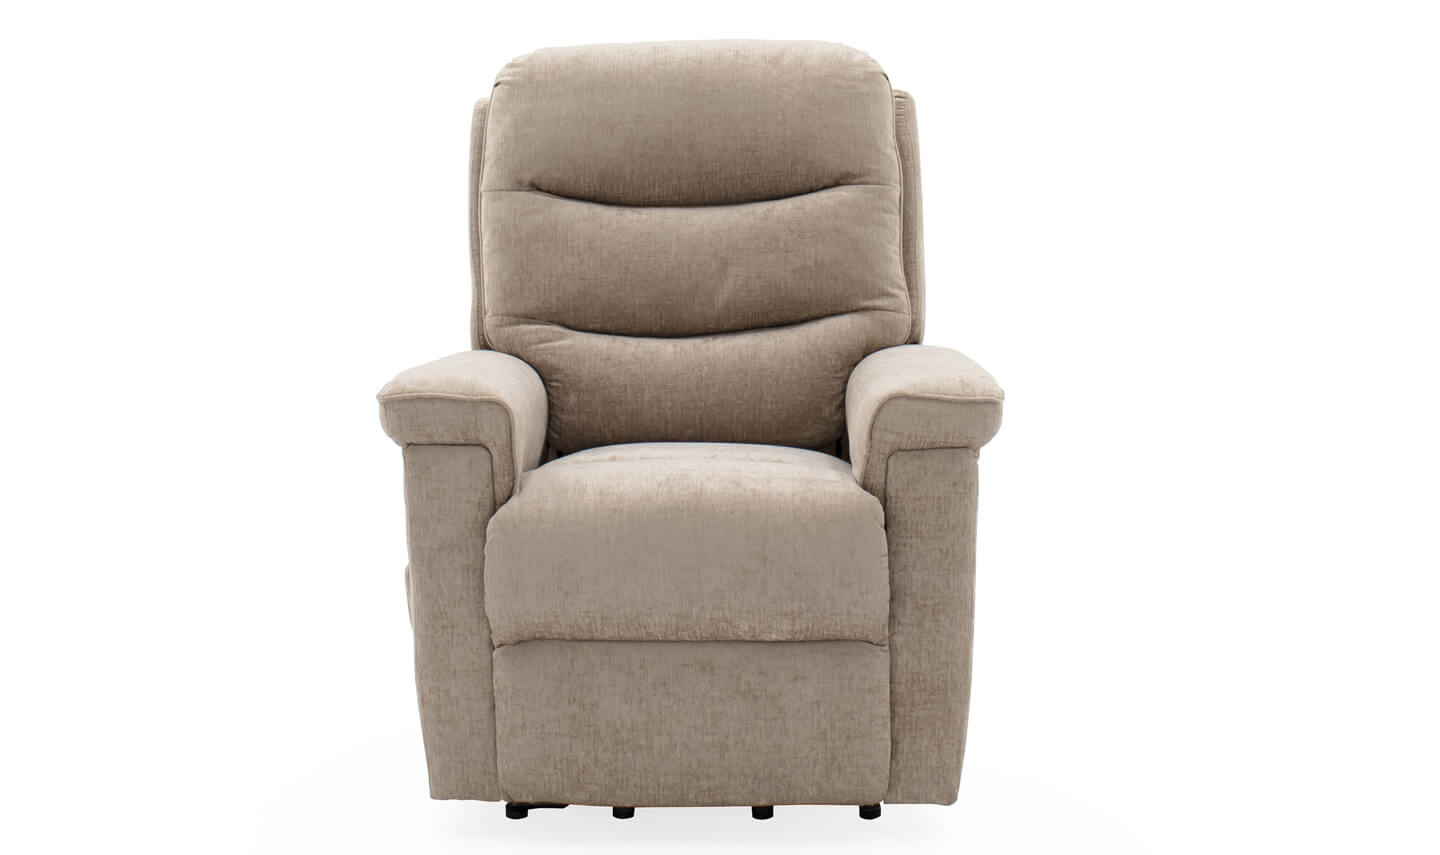 Glencoe Electric Lifet & Rise Recliner Mink